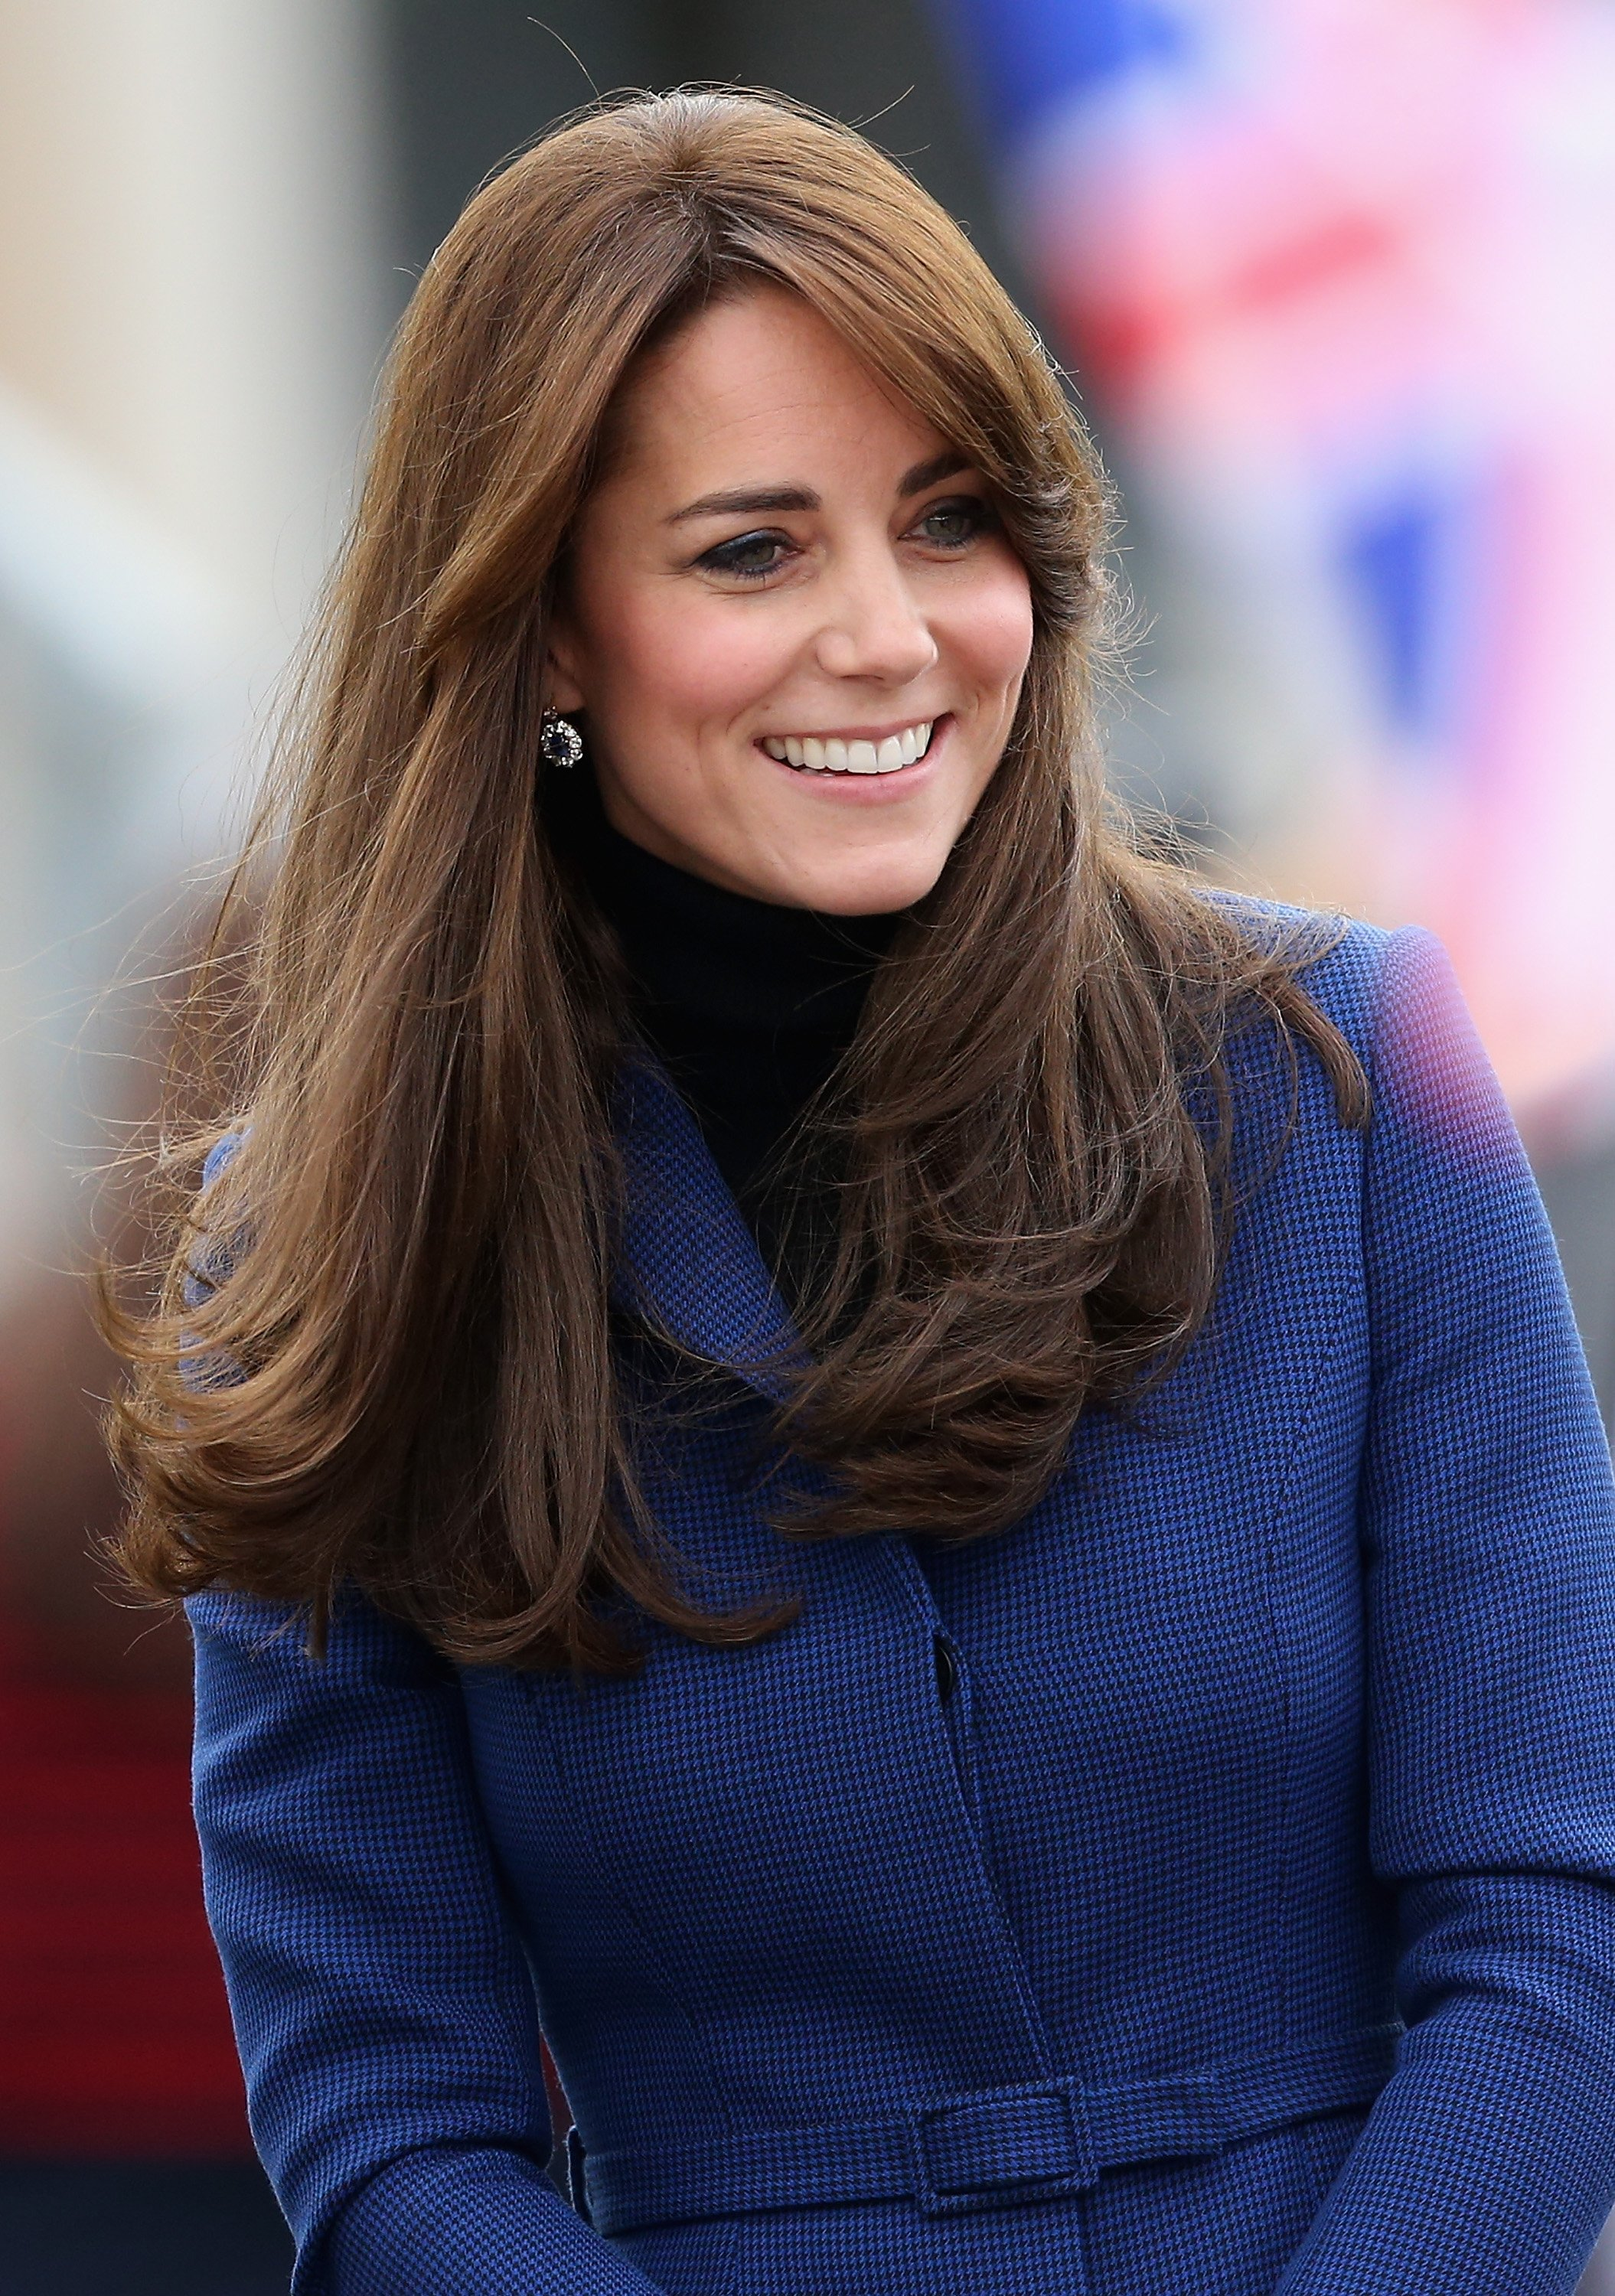 Image Source: Getty Images/Kate wearing a blue coat